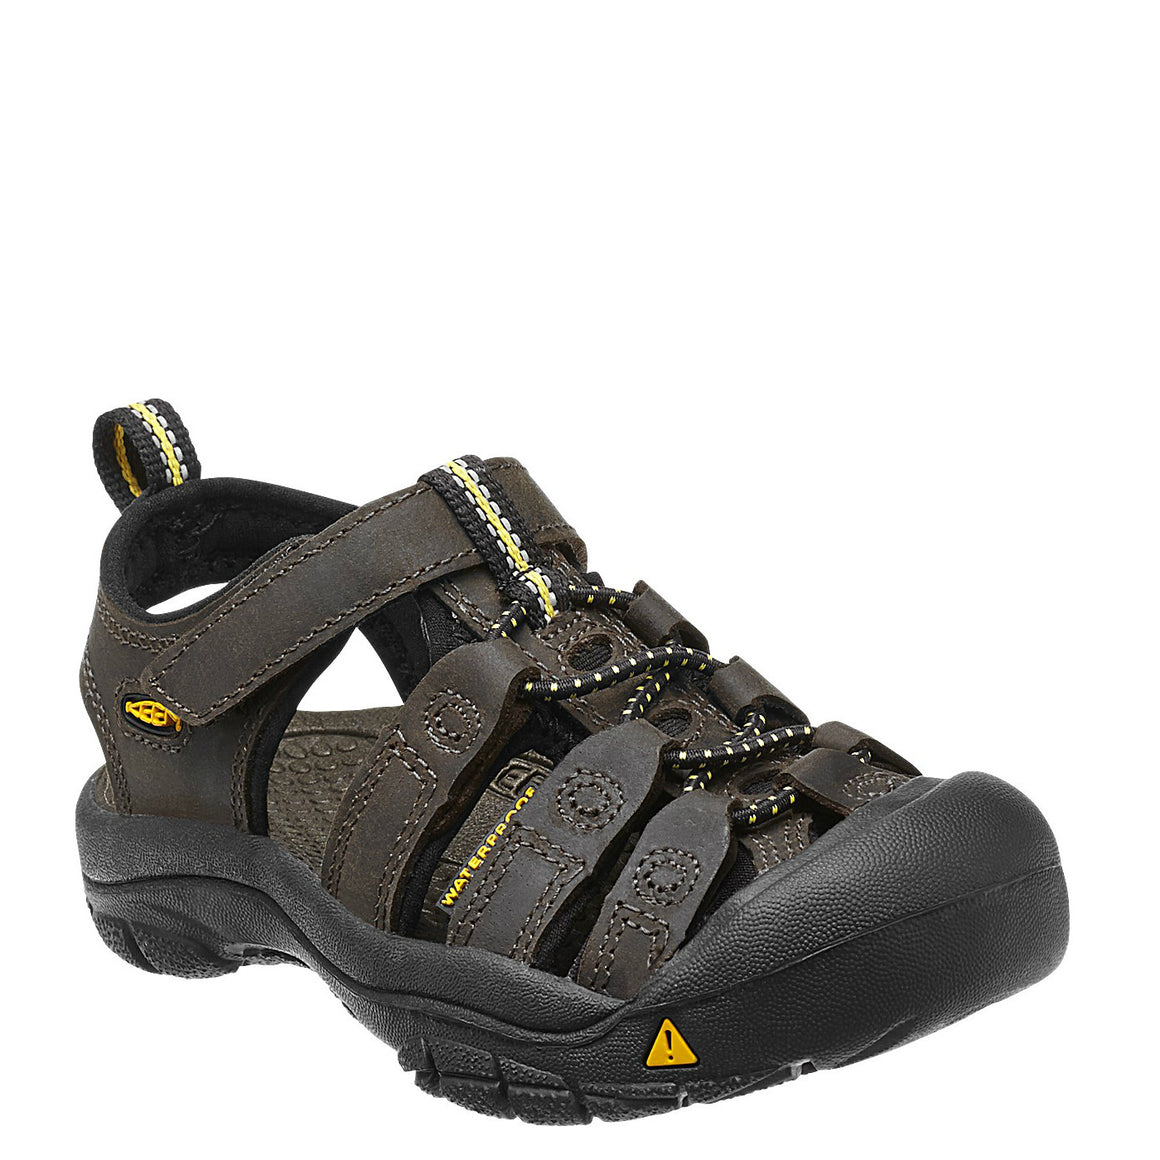 Keen Kid's Newport Premium - Dark Brown 1010005